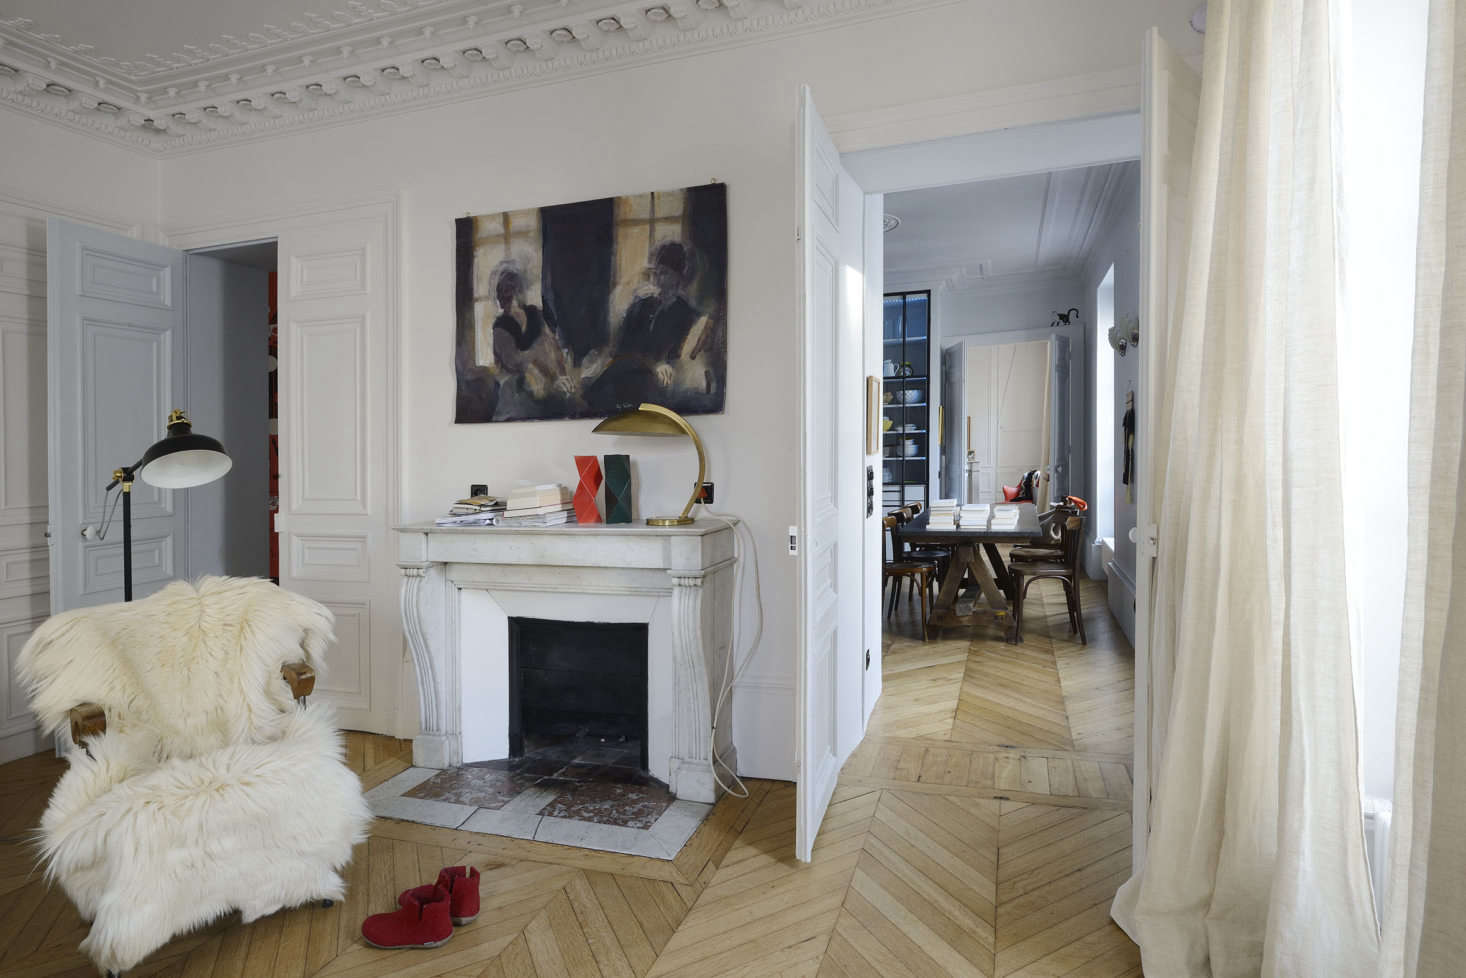 The apartment occupies the third floor of a grand th-century Parisian building. Linde and Saalburg divided the layout into three zones: the living area in the center with the parents&#8